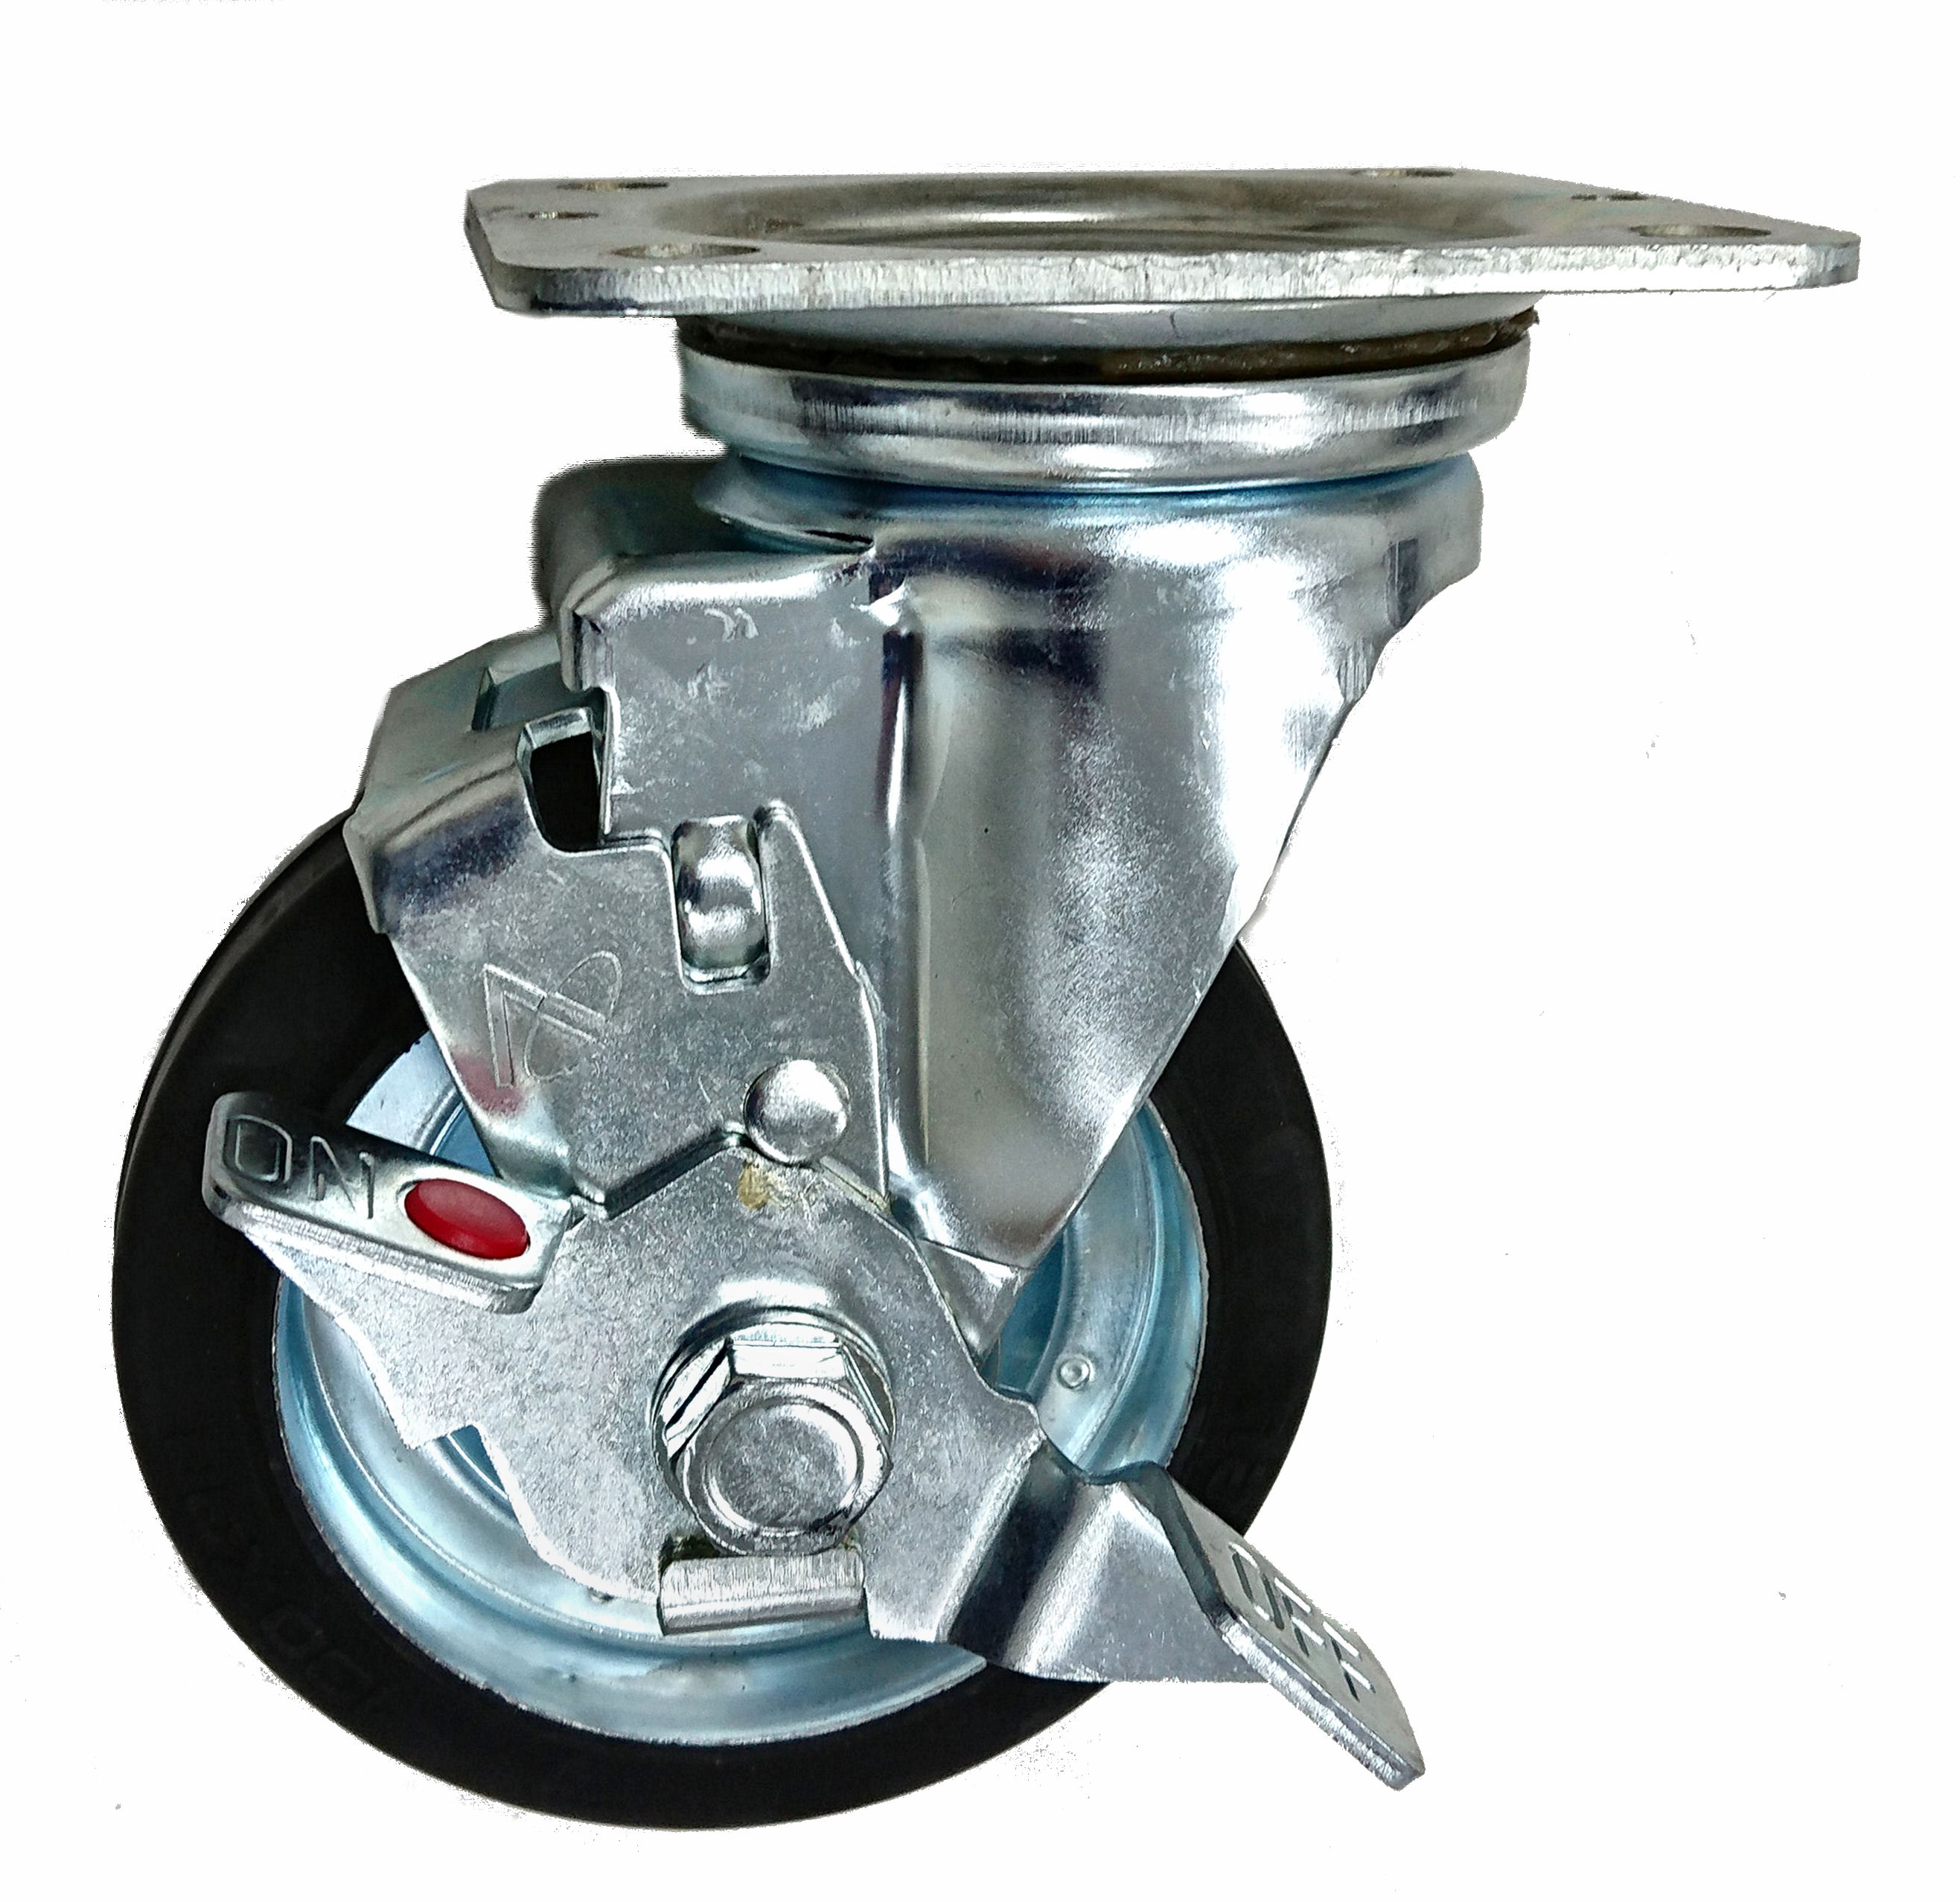 Plate Type Metal Frame Caster